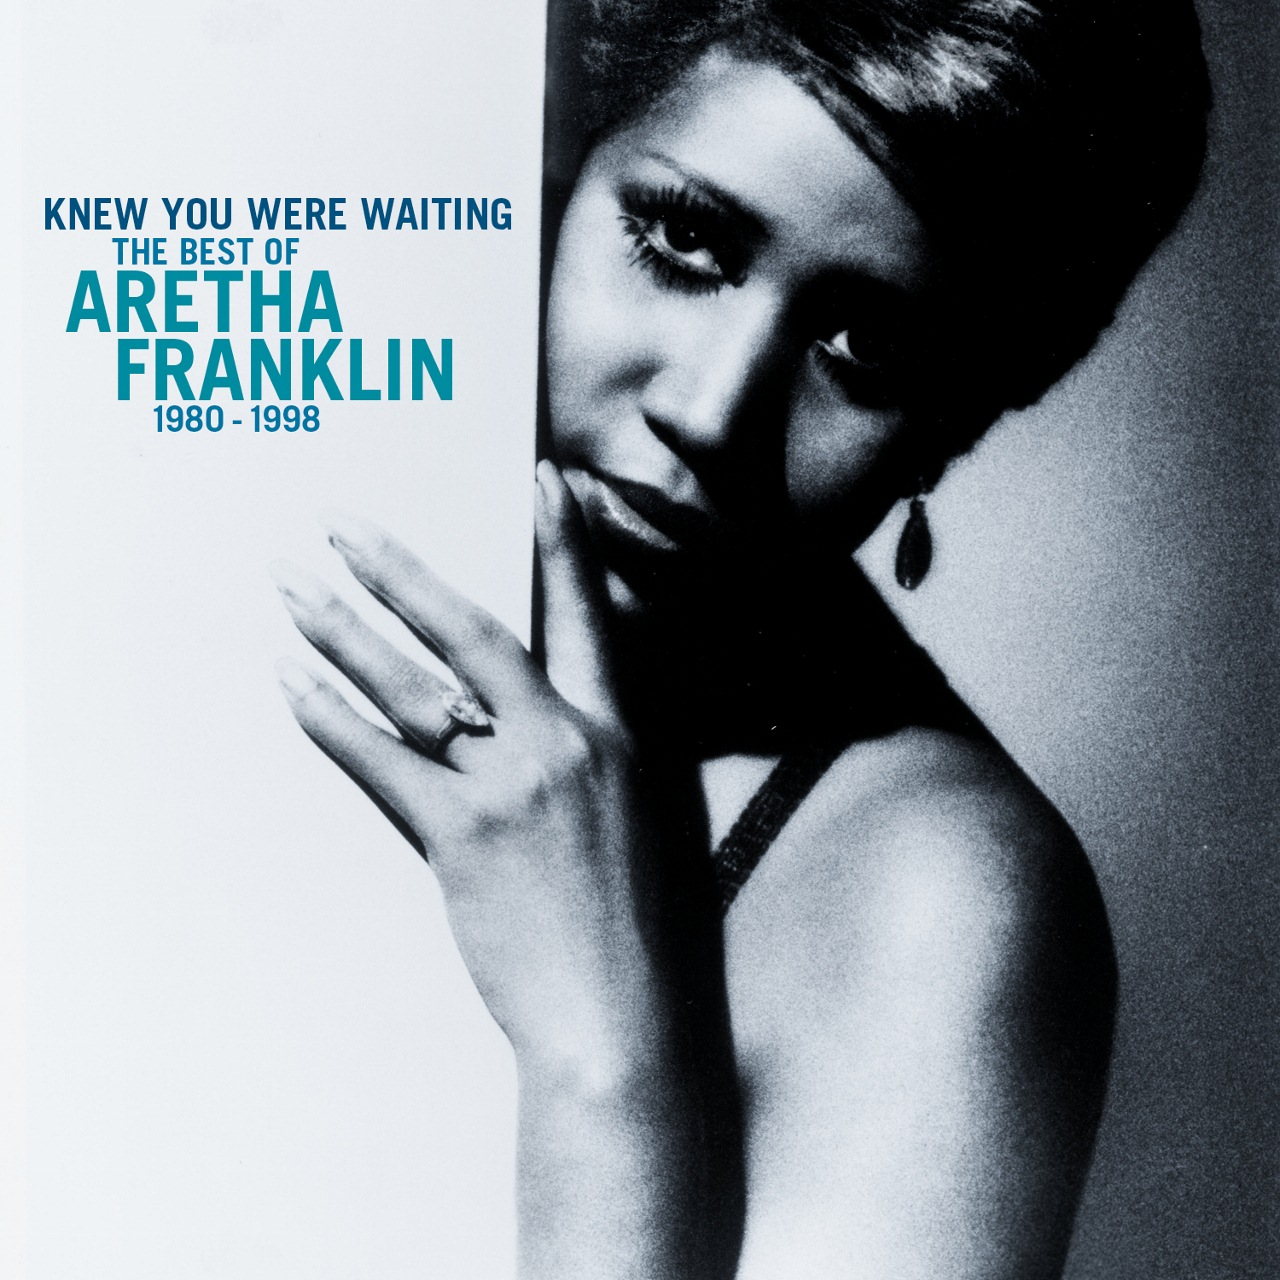 aretha franklin knew you were waiting the best of aretha. Black Bedroom Furniture Sets. Home Design Ideas